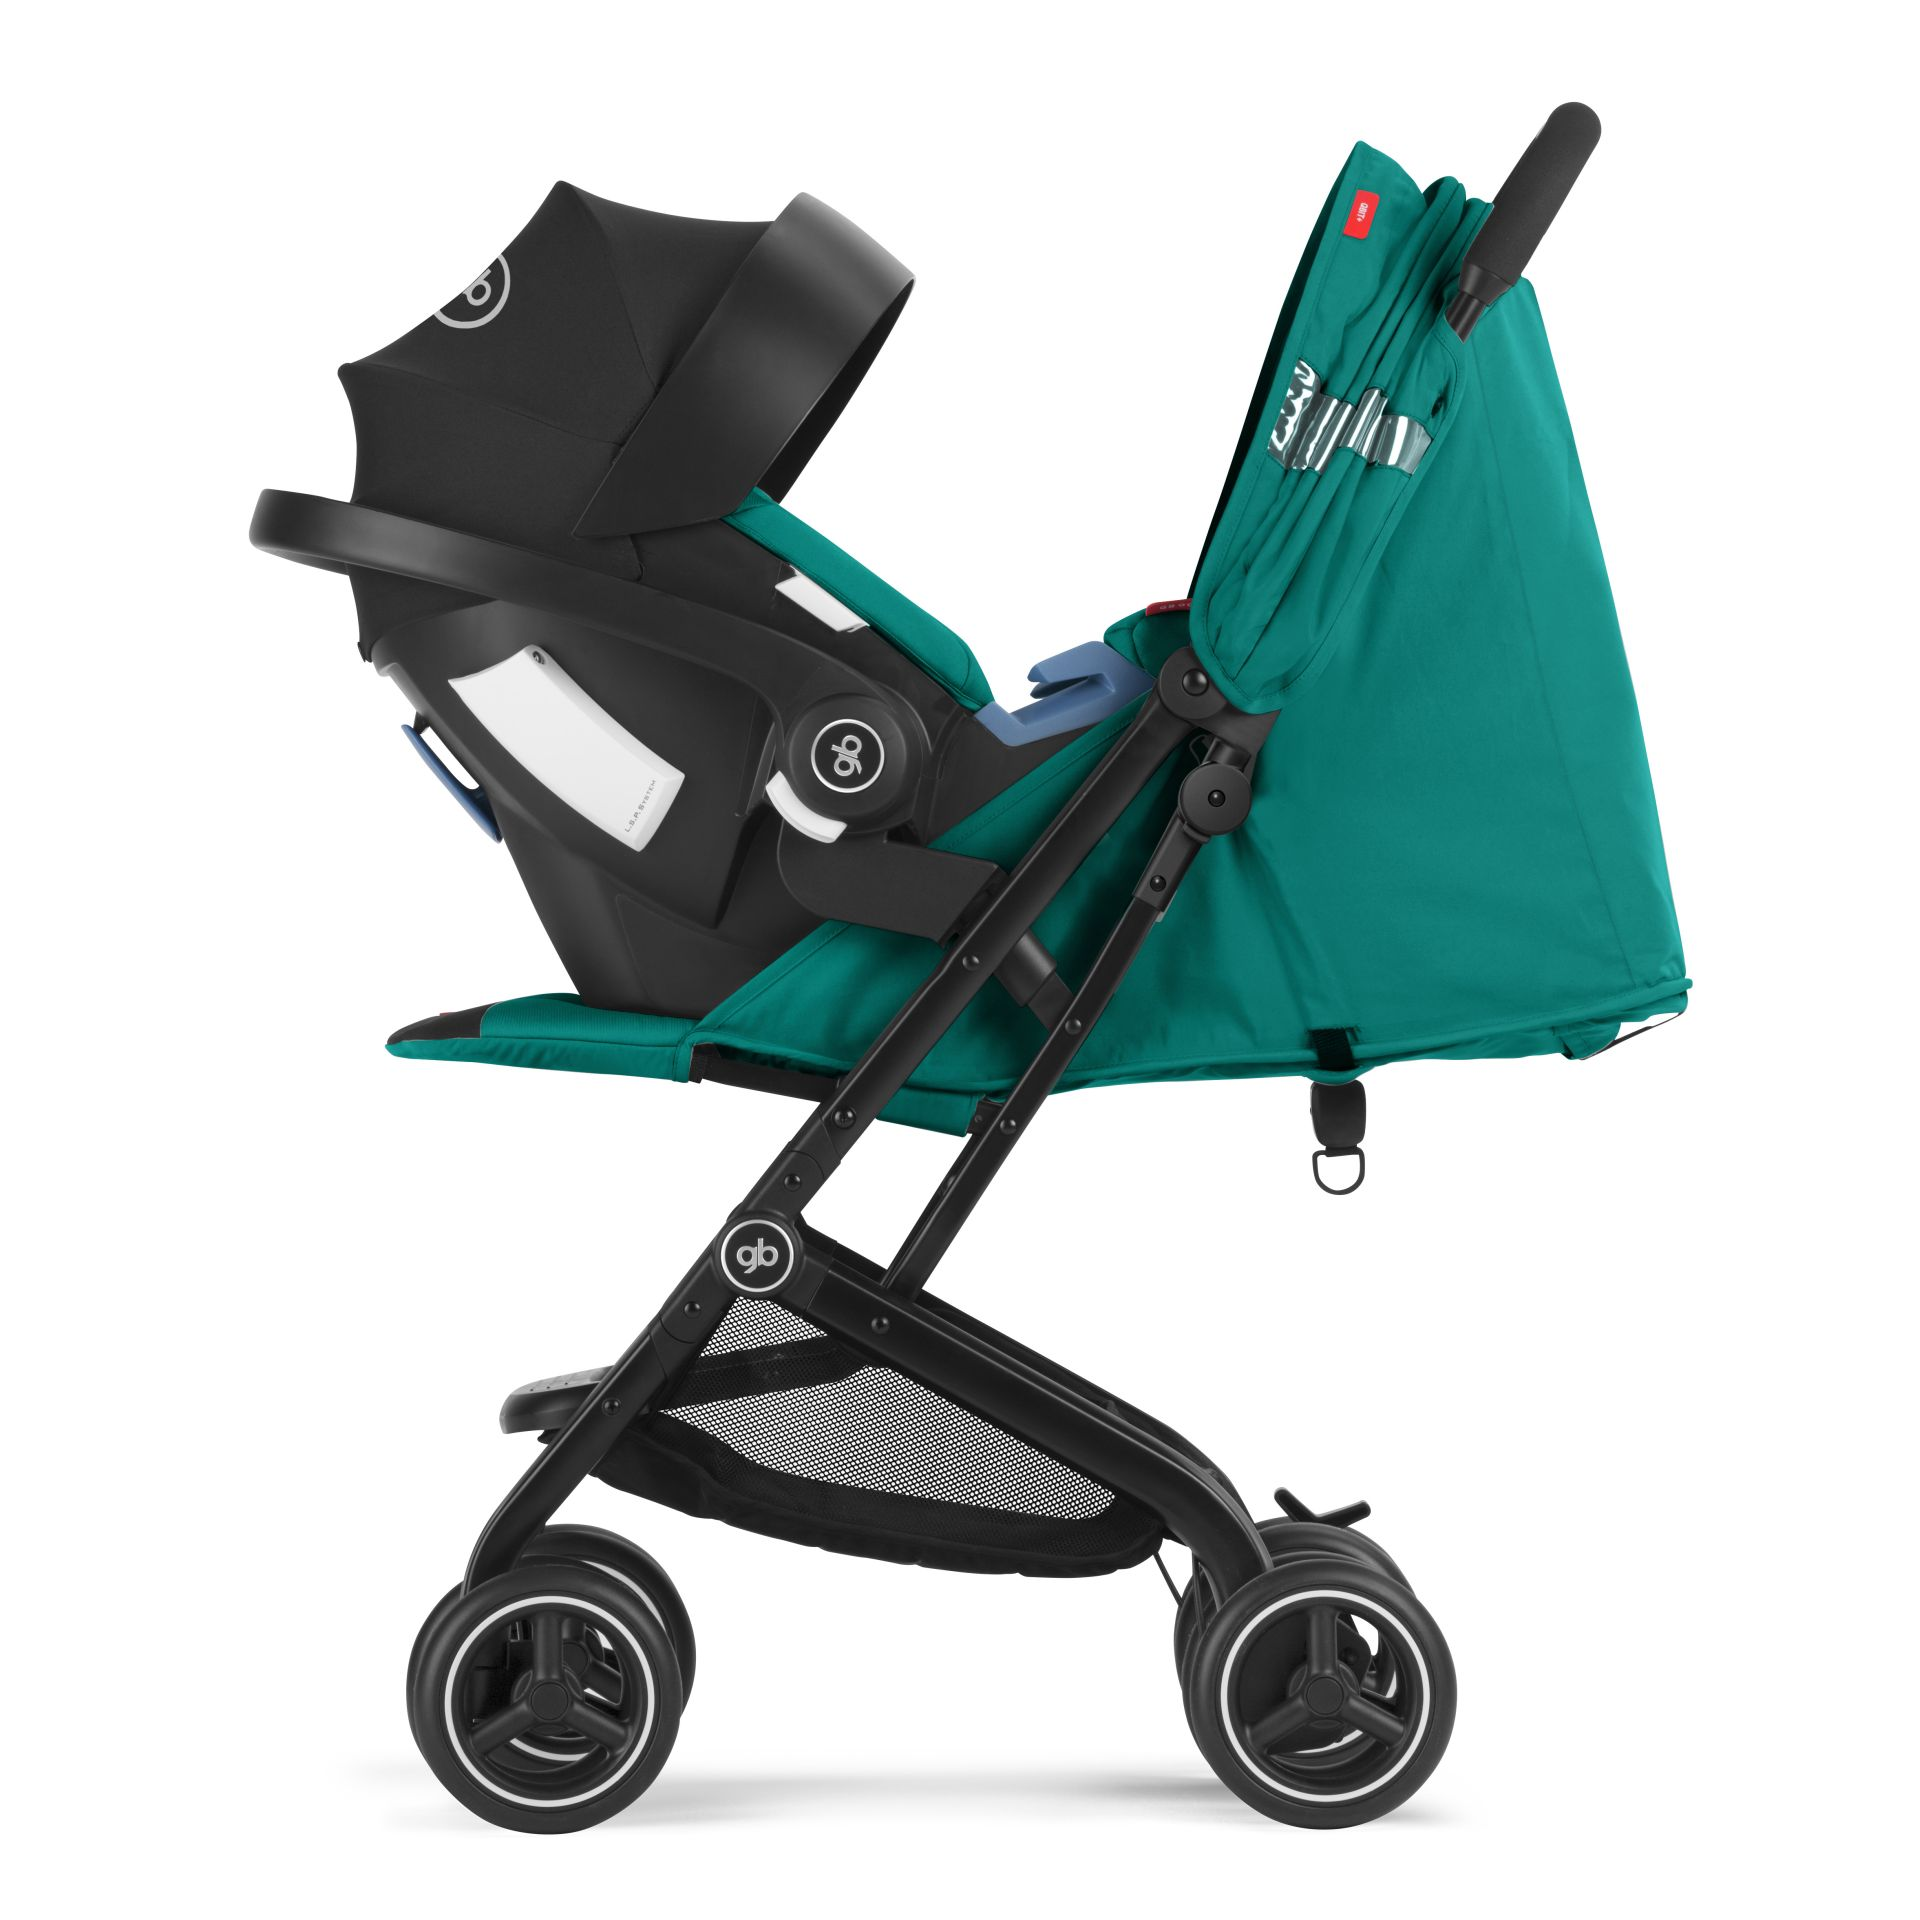 Cybex Buggy Liegeposition Gb By Cybex Buggy Qbit